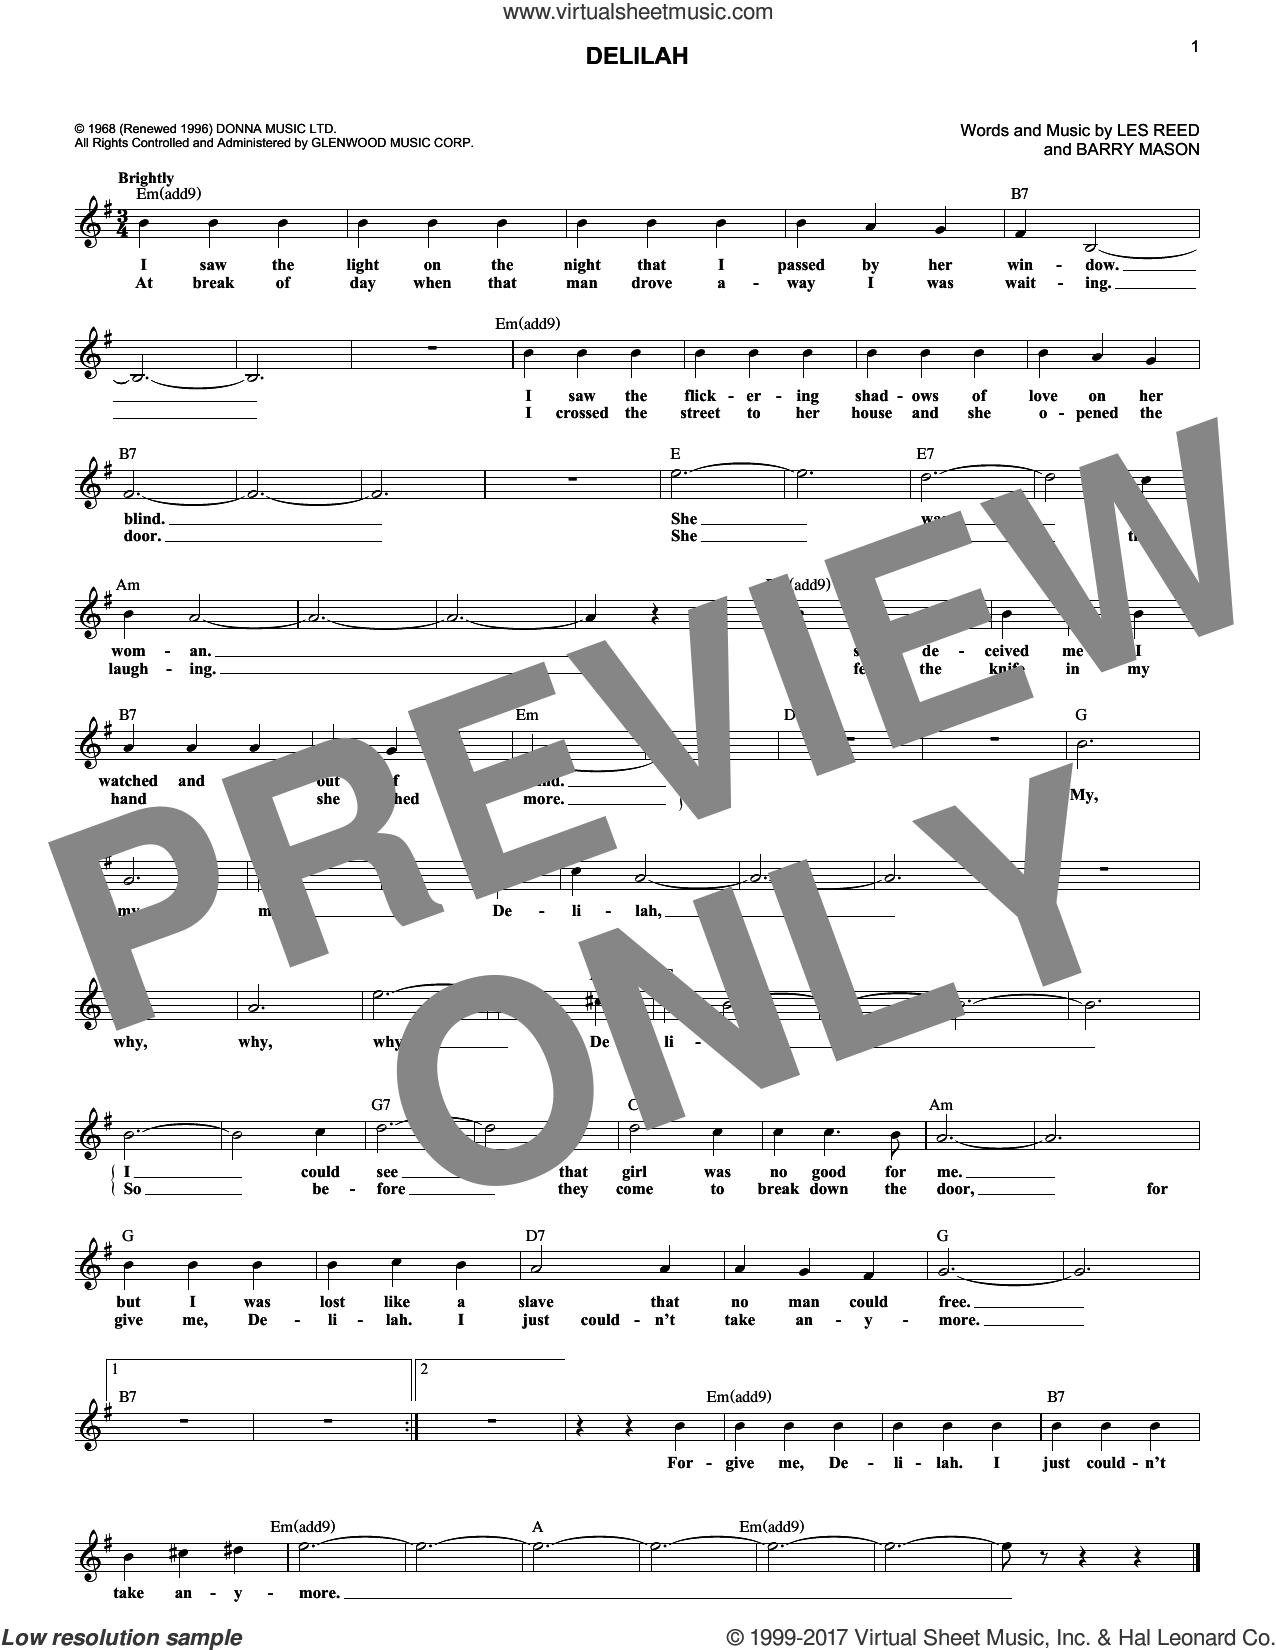 Delilah sheet music for voice and other instruments (fake book) by Tom Jones, Barry Mason and Les Reed, intermediate skill level